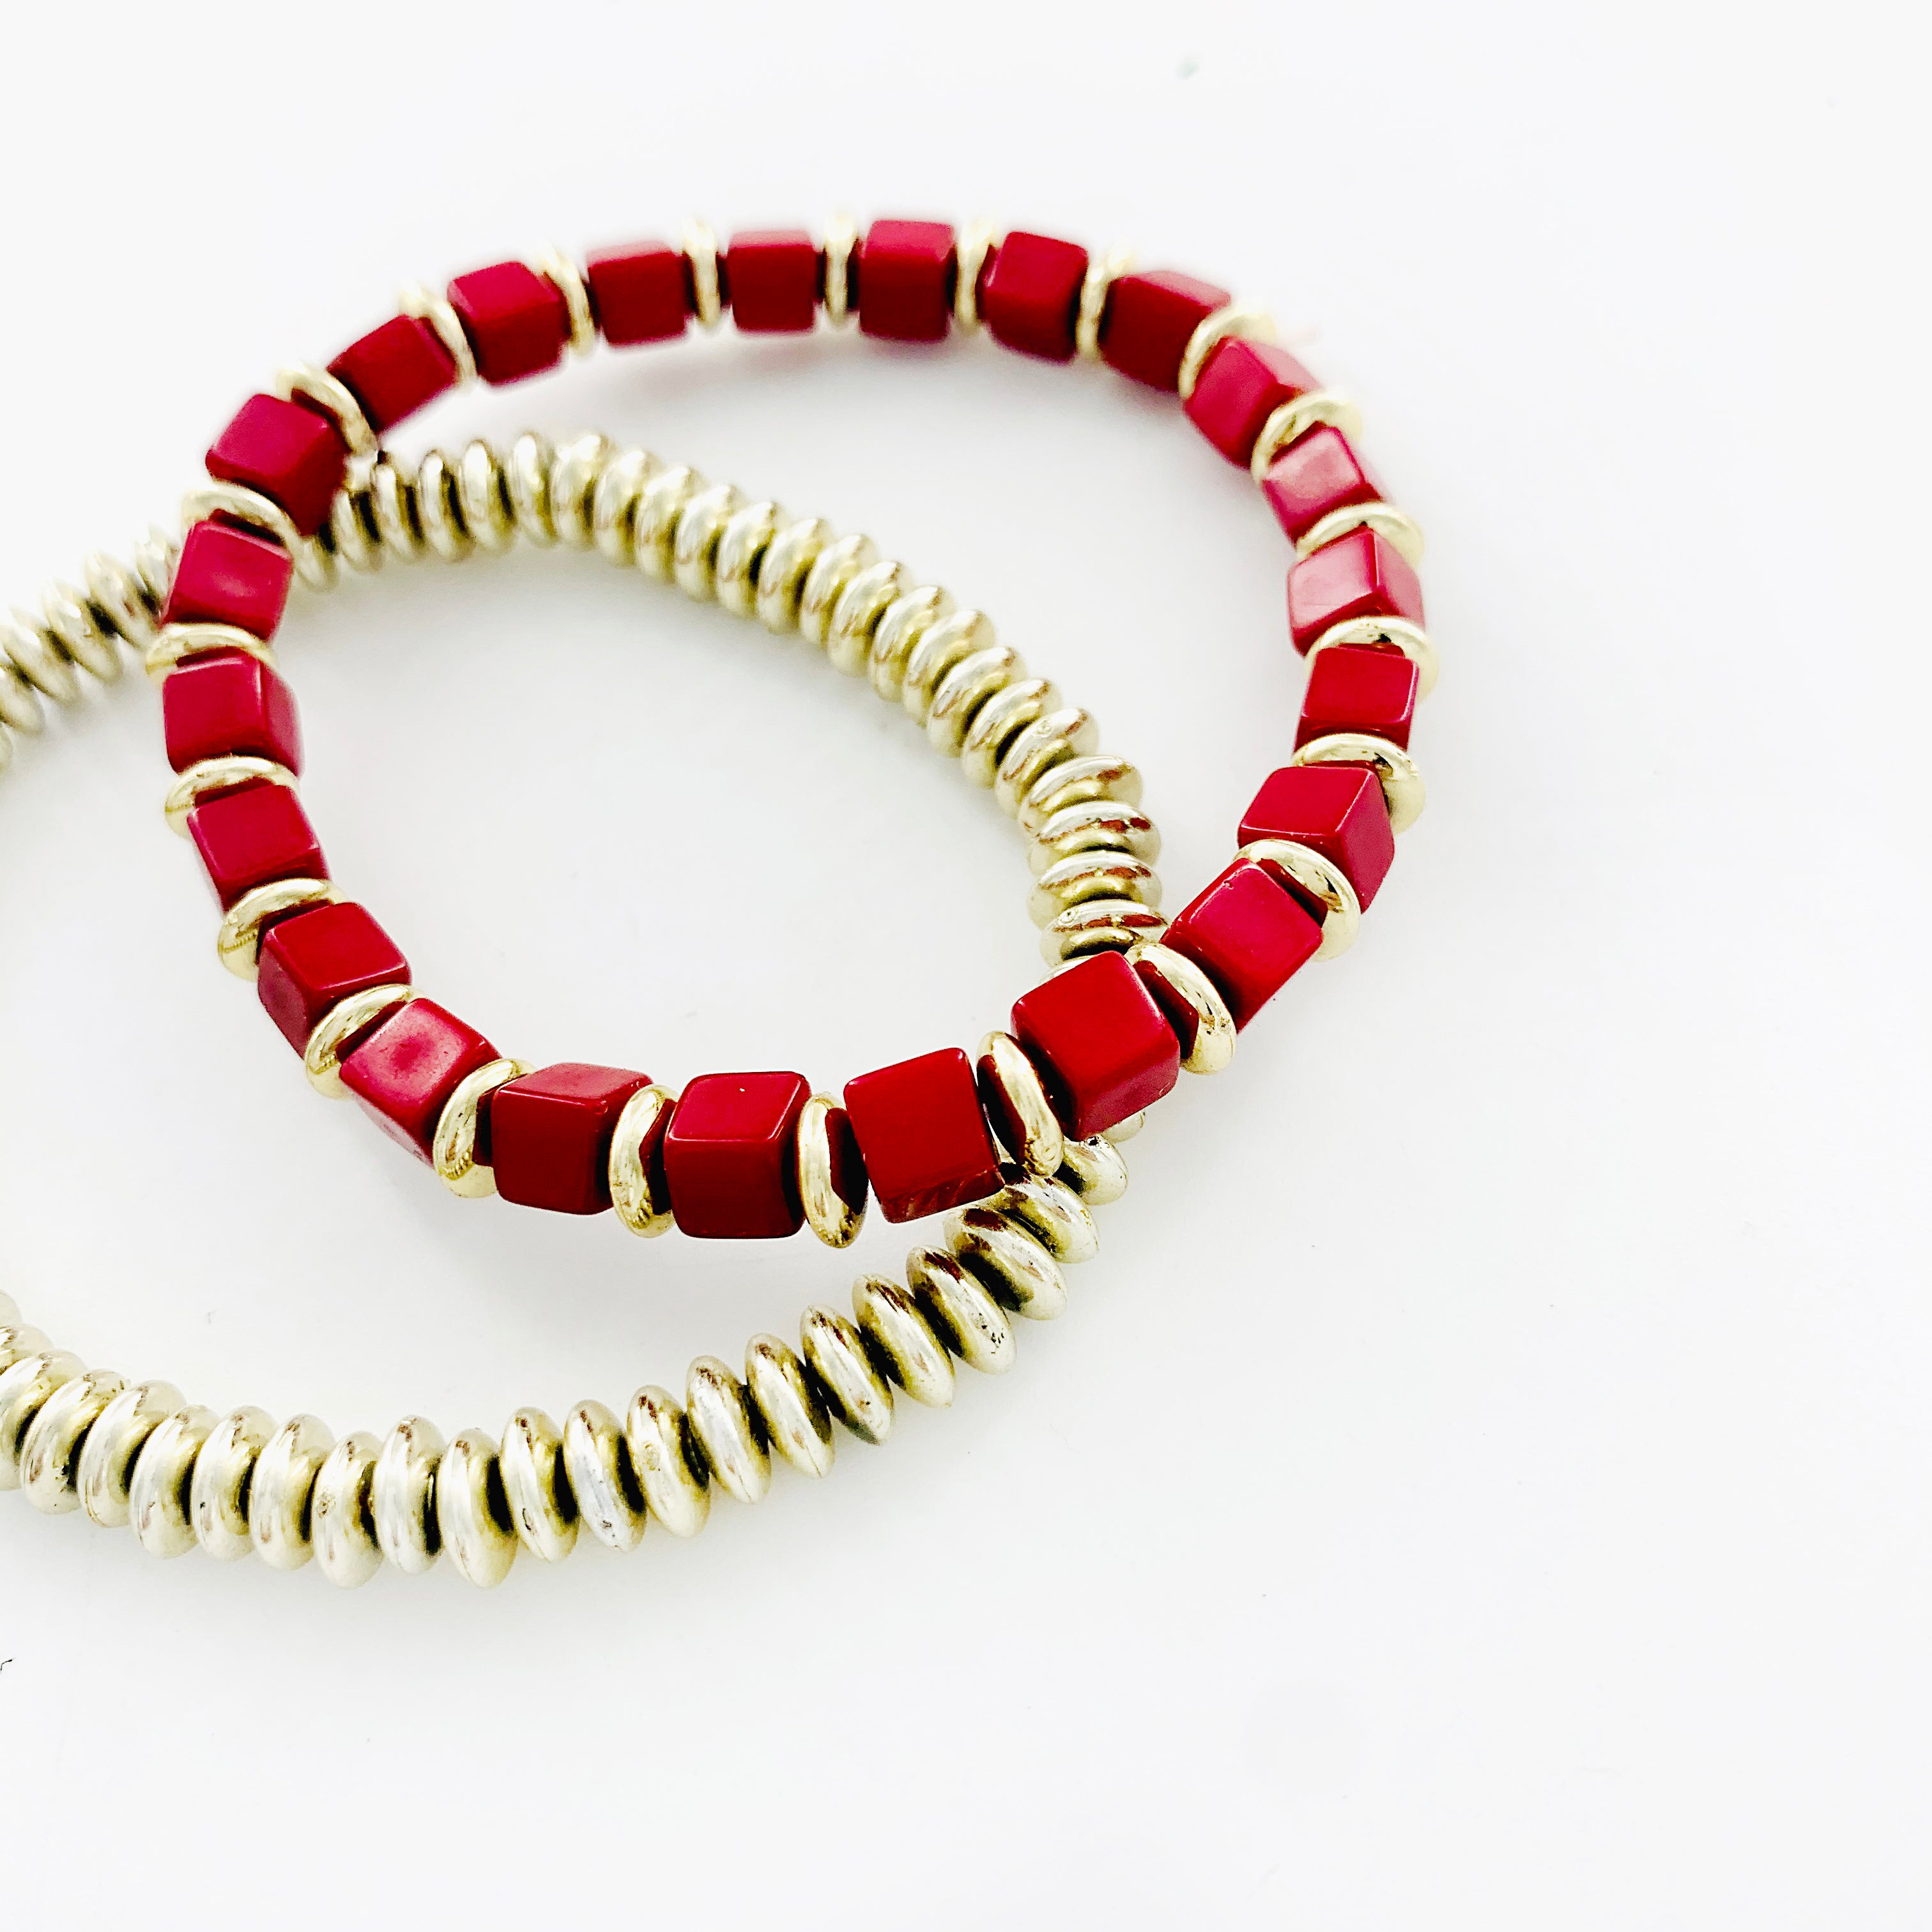 Red and gold beaded double bracelets